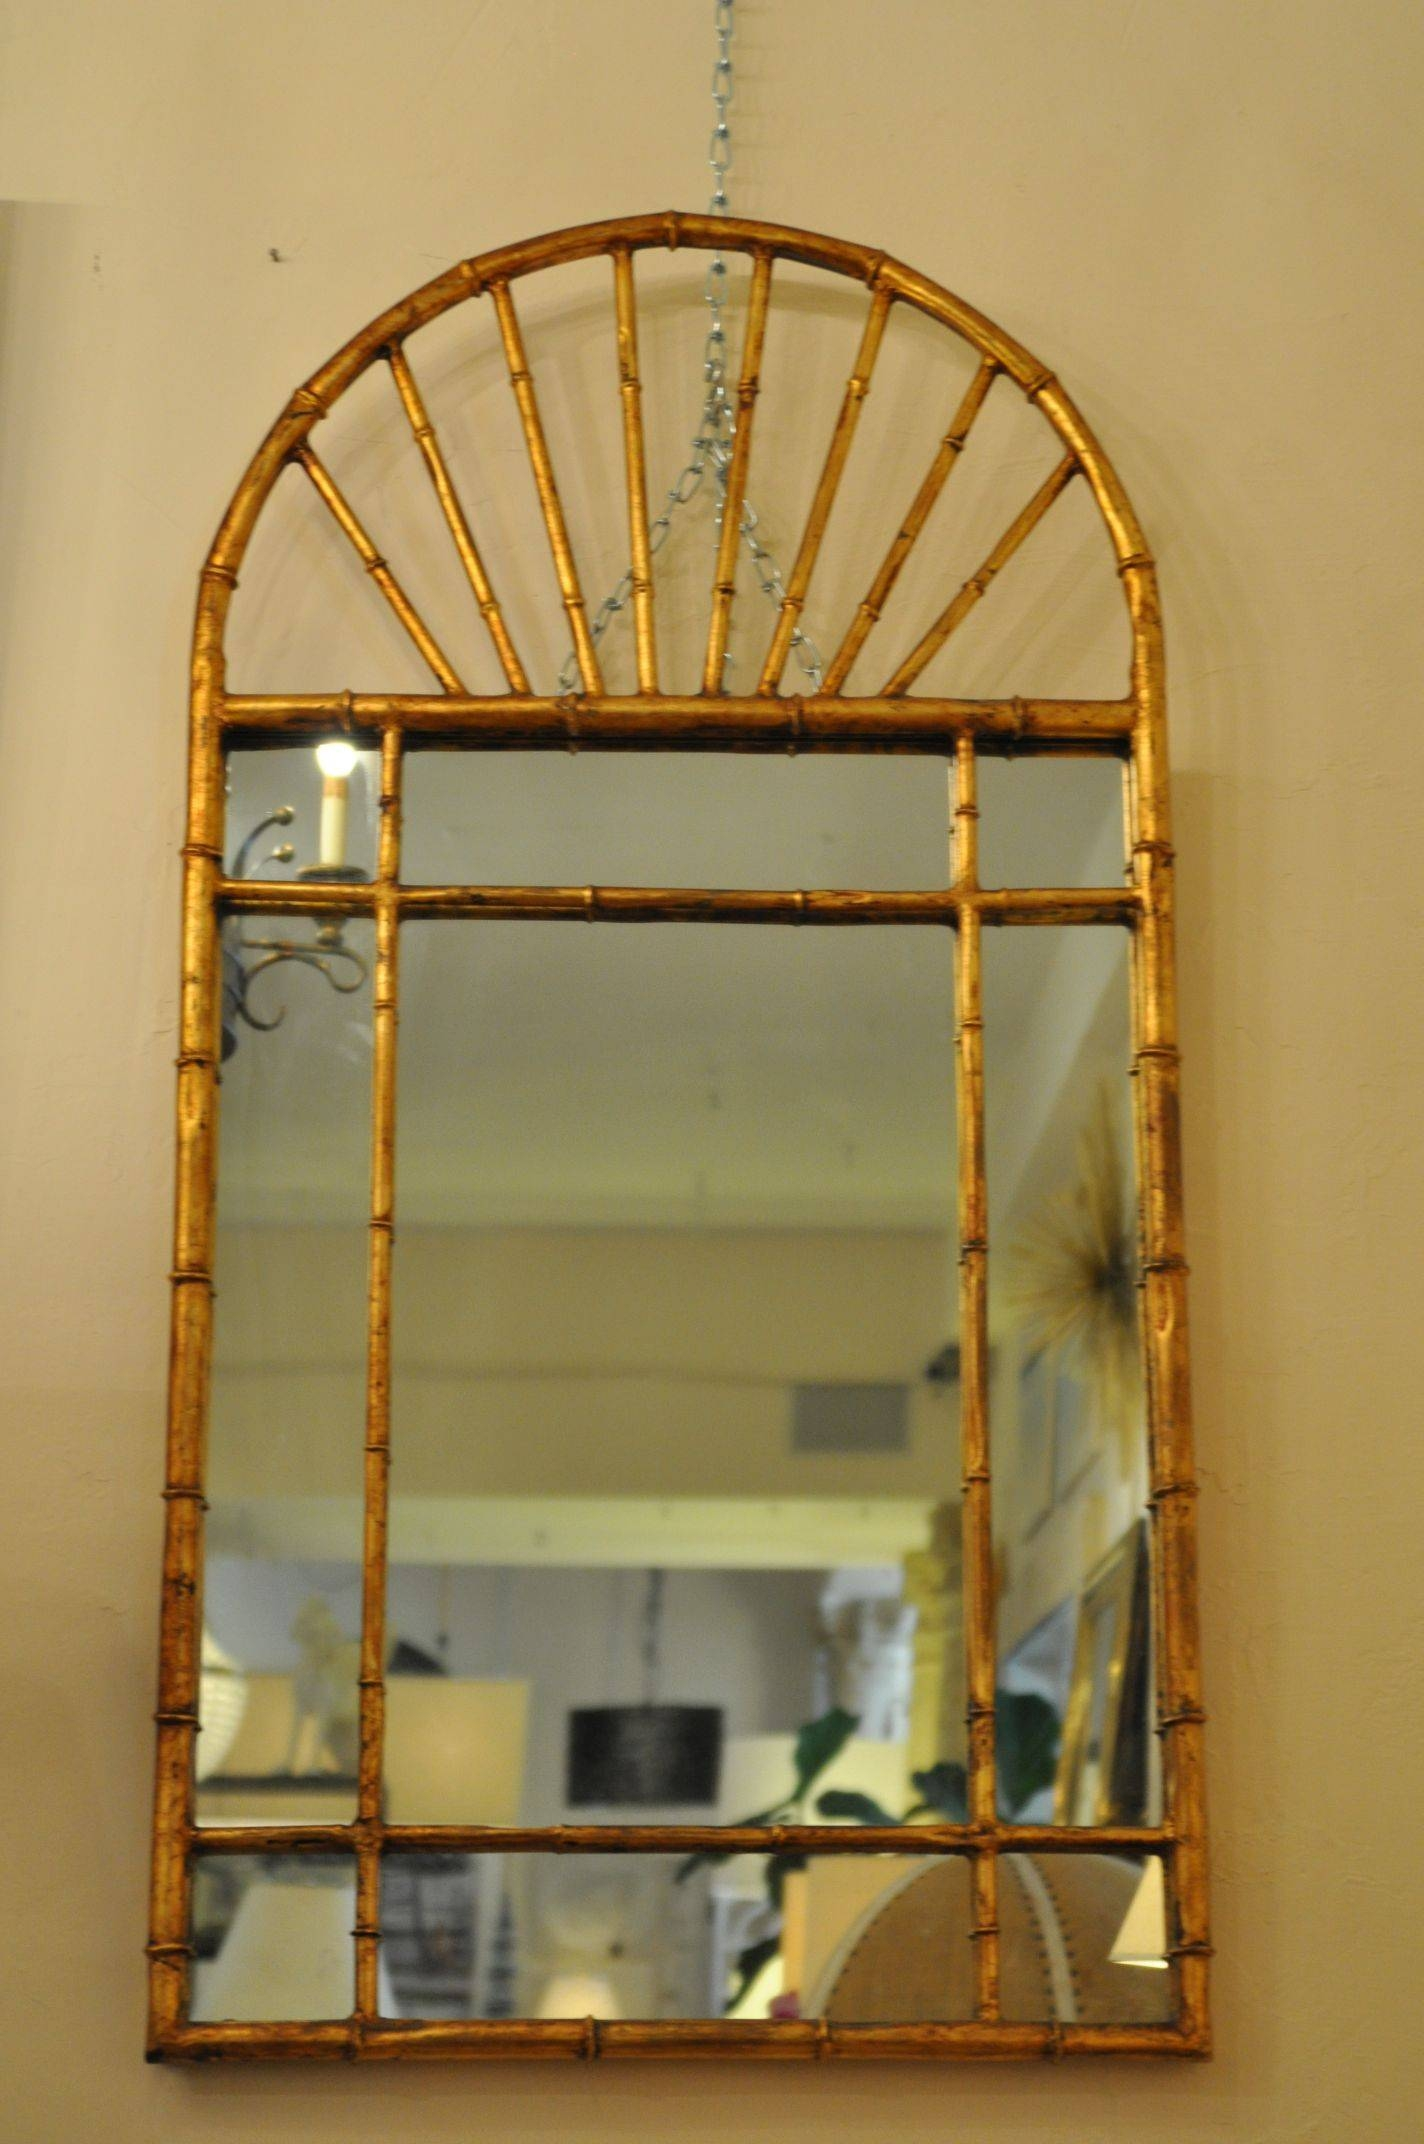 Vintage Italian Faux Bamboo Mirrors - Mecox Gardens for Gold Arch Mirrors (Image 25 of 25)